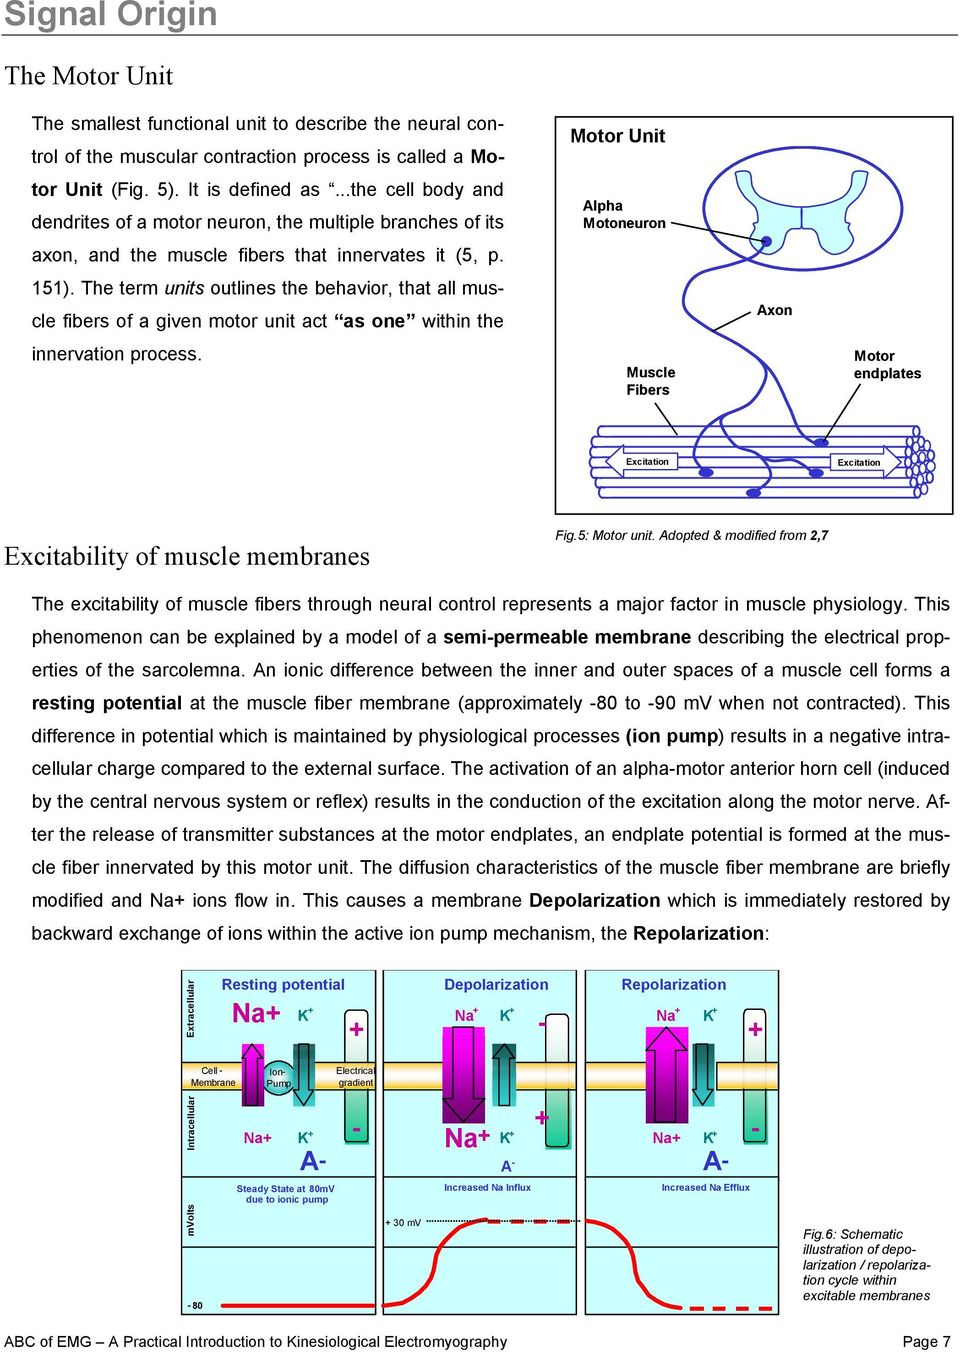 The Abc Of Emg A Practical Introduction To Kinesiological Figure 5 Schematic Diagram Electromyography Detecting Term Units Outlines Behavior That All Muscle Fibers Given Motor Unit